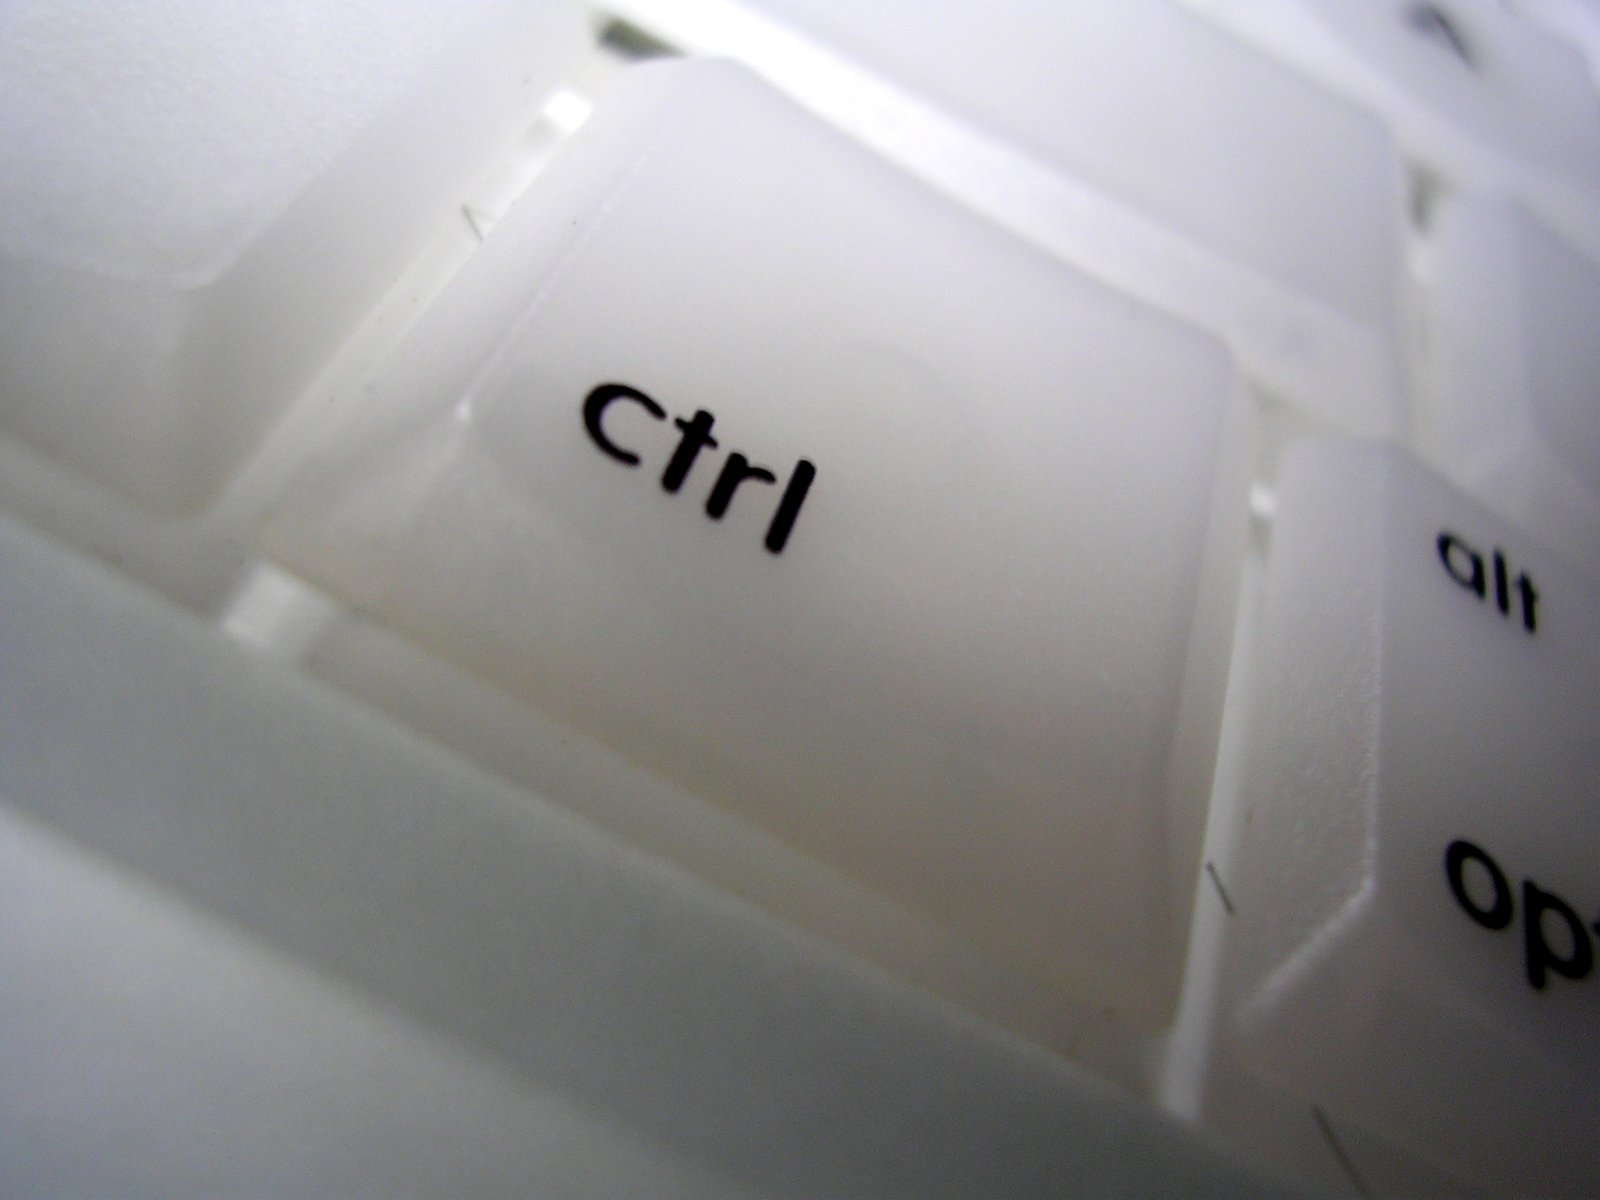 CTRL+ALT+DEL sequence